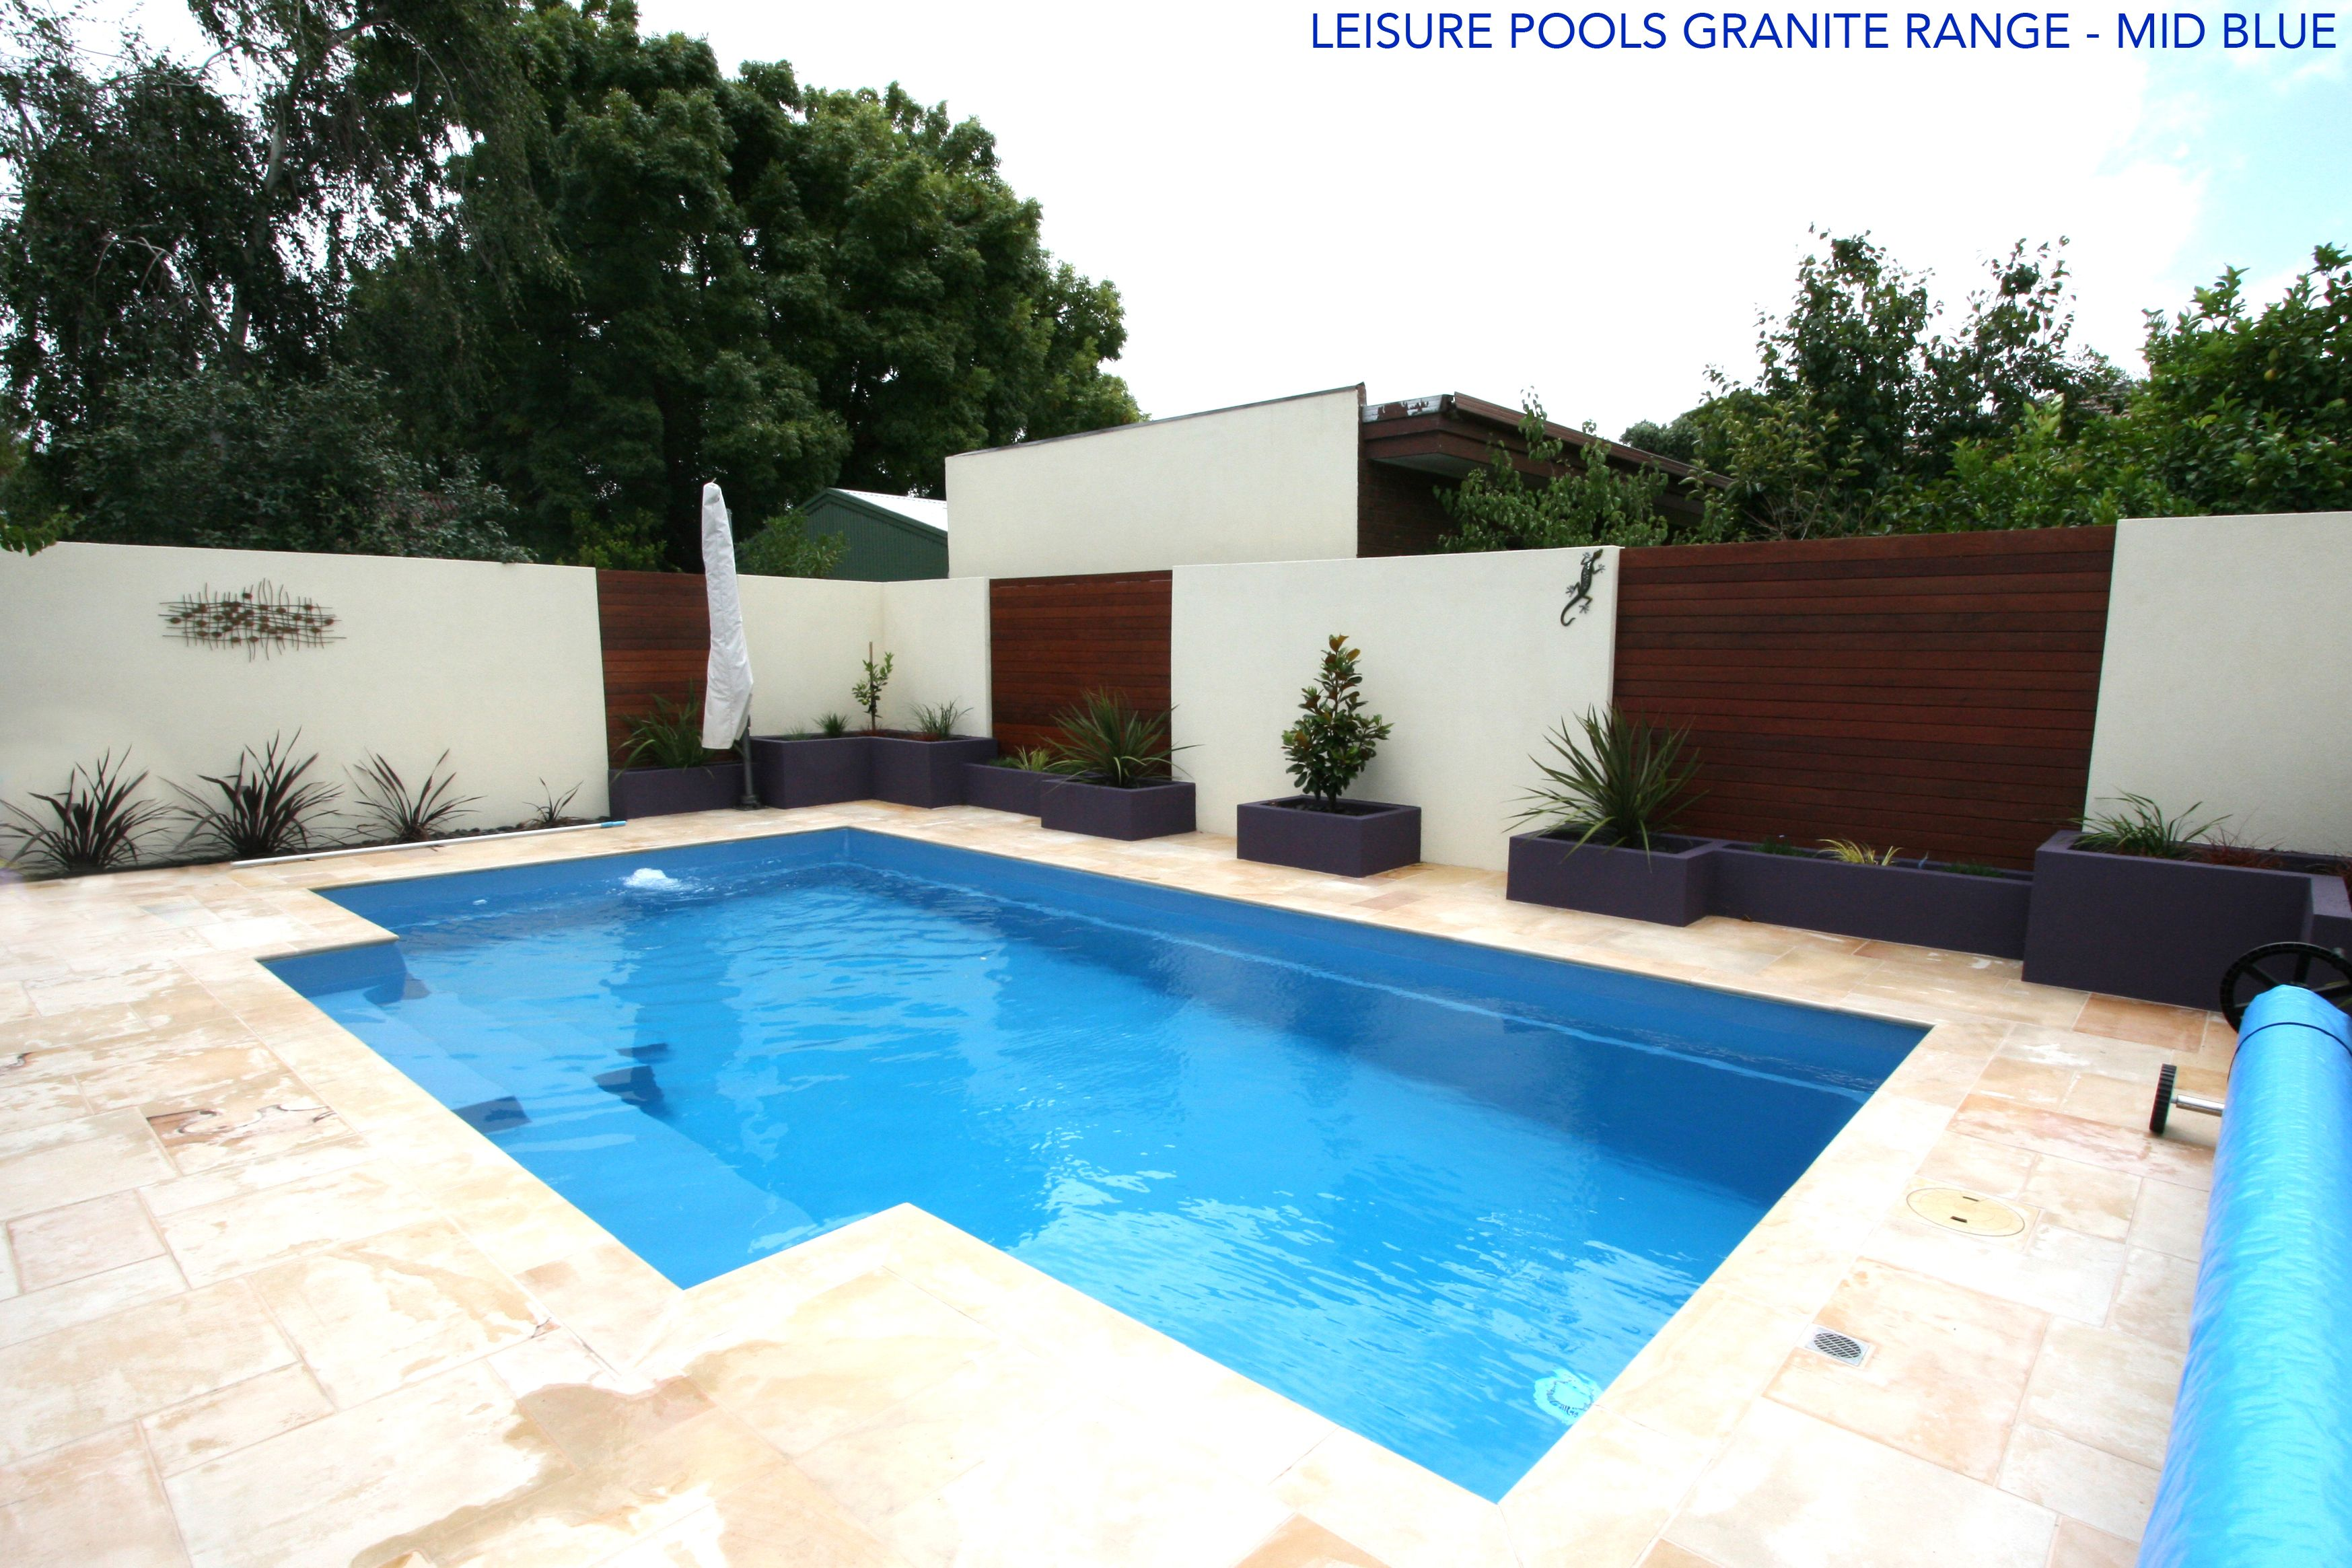 The Reflection In Mid Blue By Leisure Pools Check Out